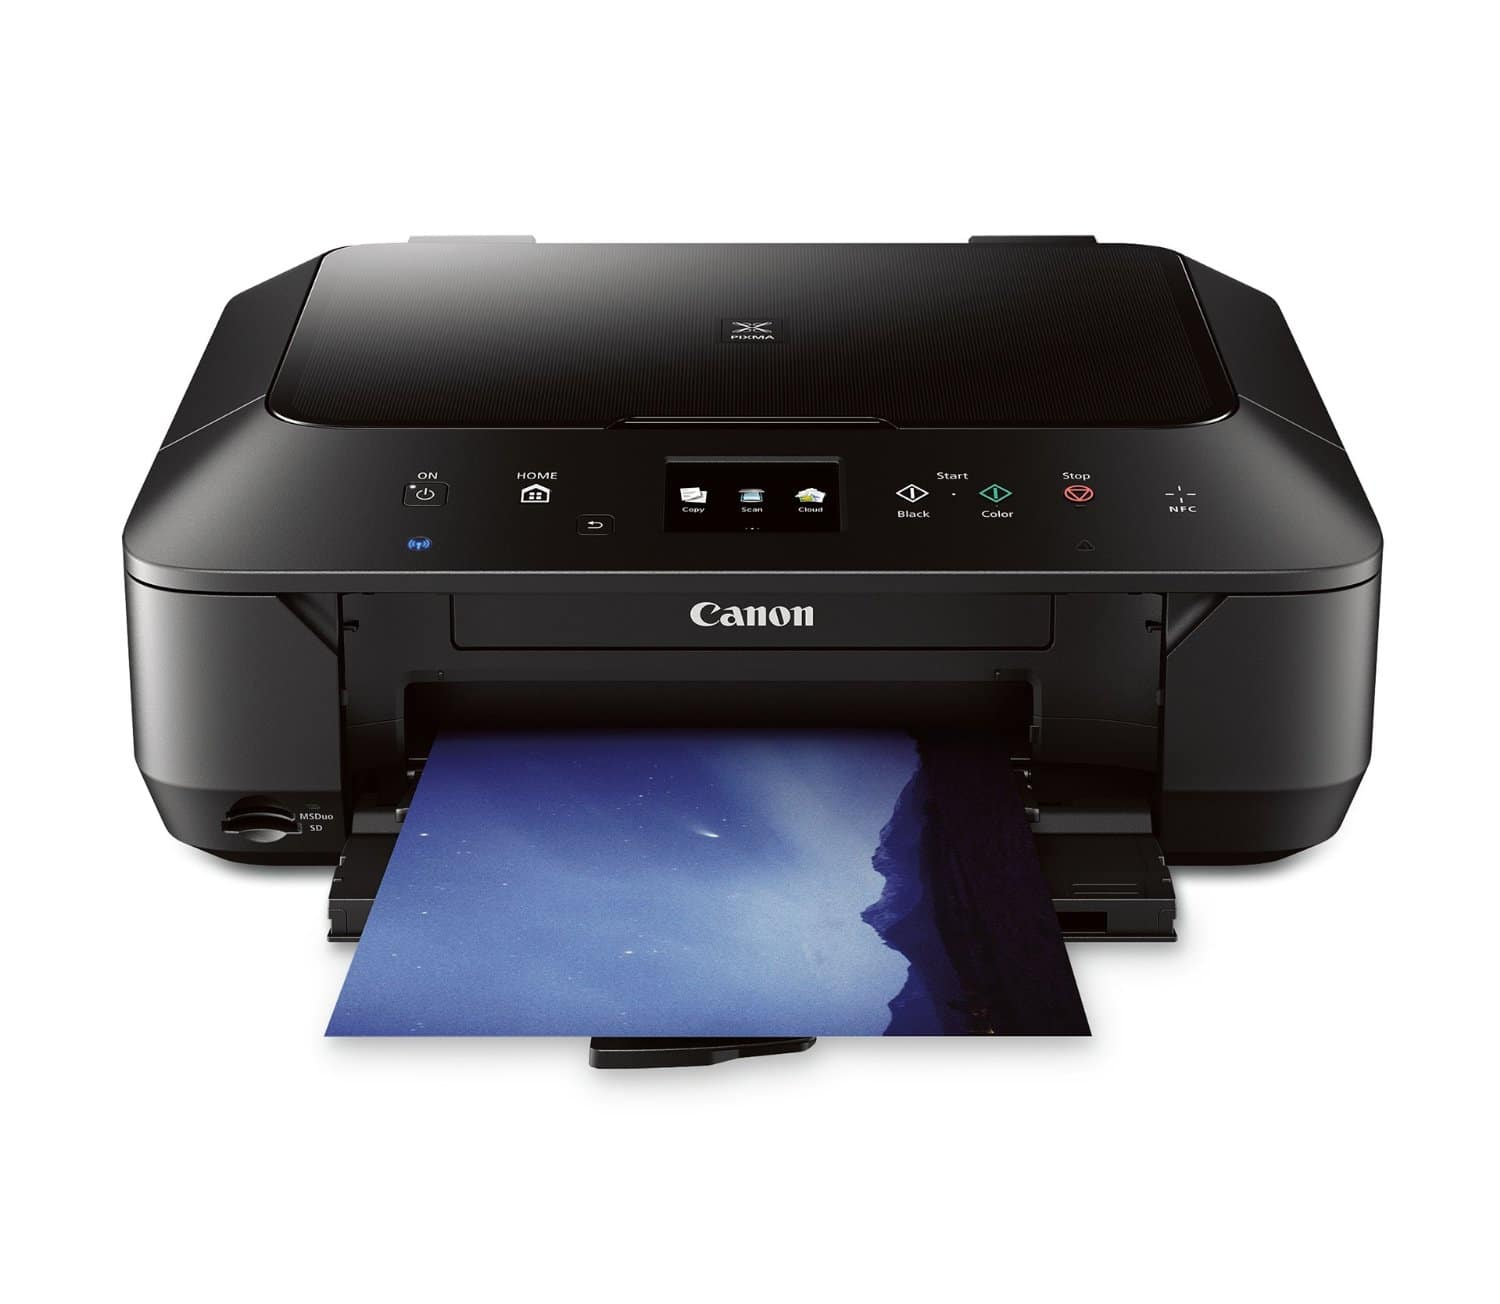 Canon Pixma MG6620 Wireless Color Photo All-in-One Inkjet Printer $55 + Free Shipping!